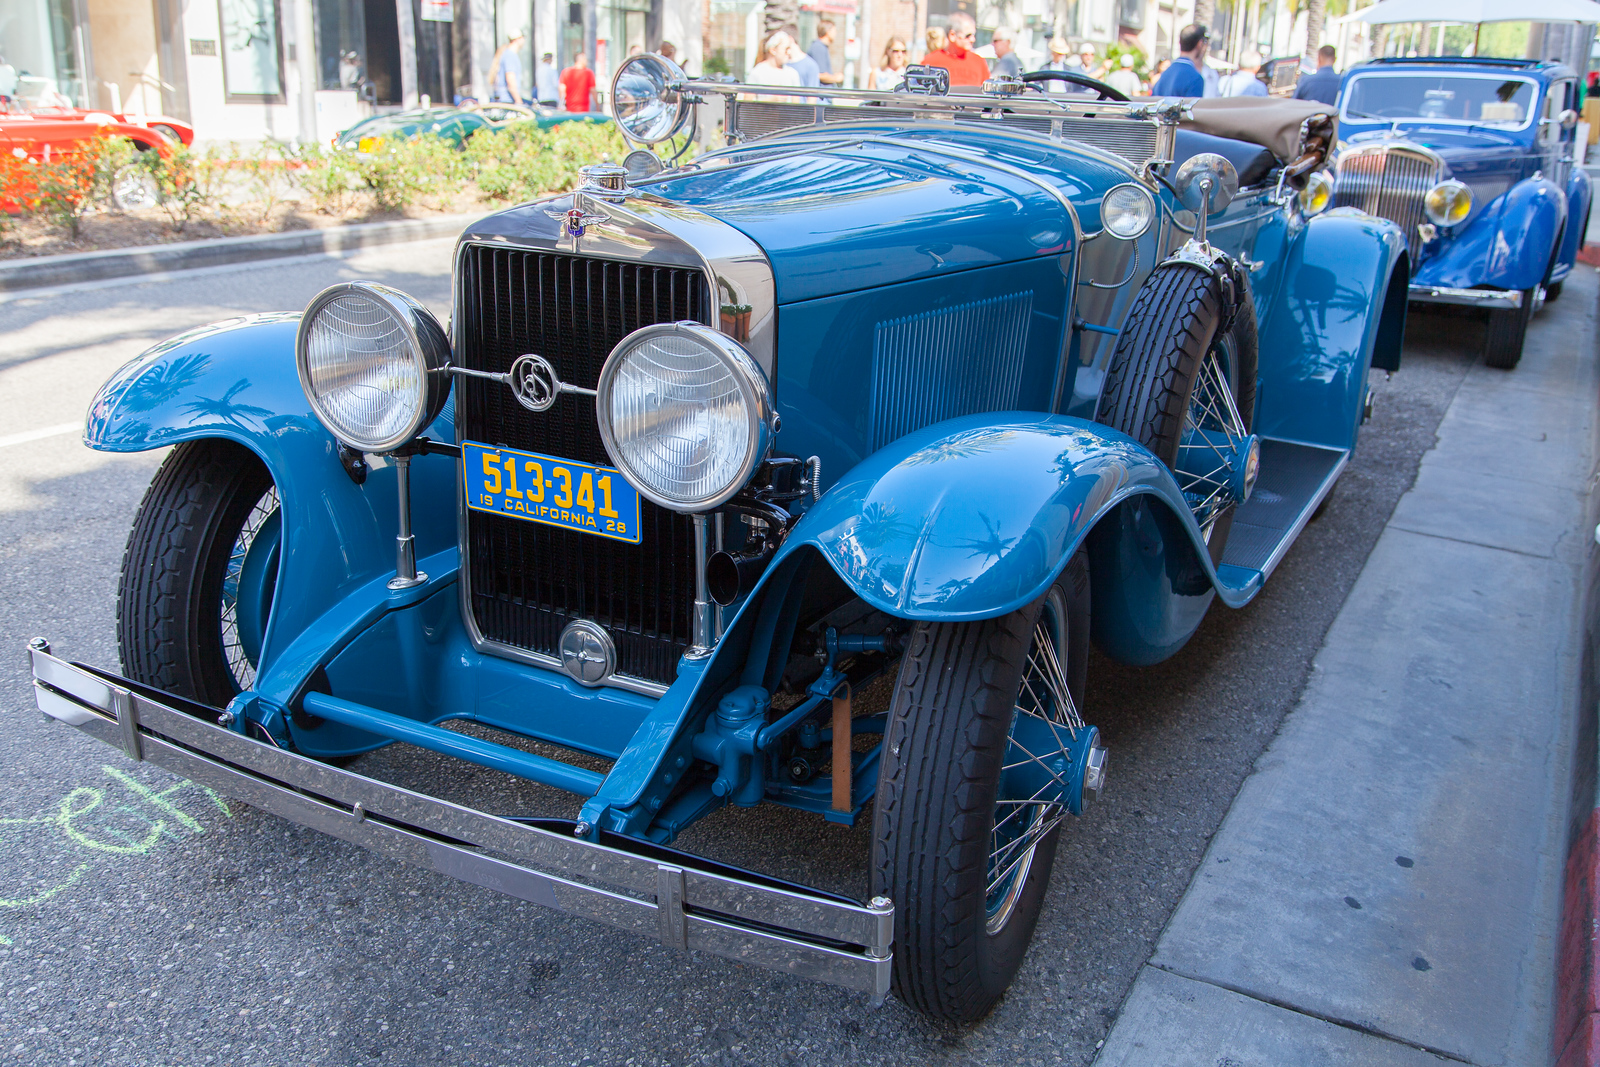 1928 LaSalle 303 Roadster, owned by Richard Stanley